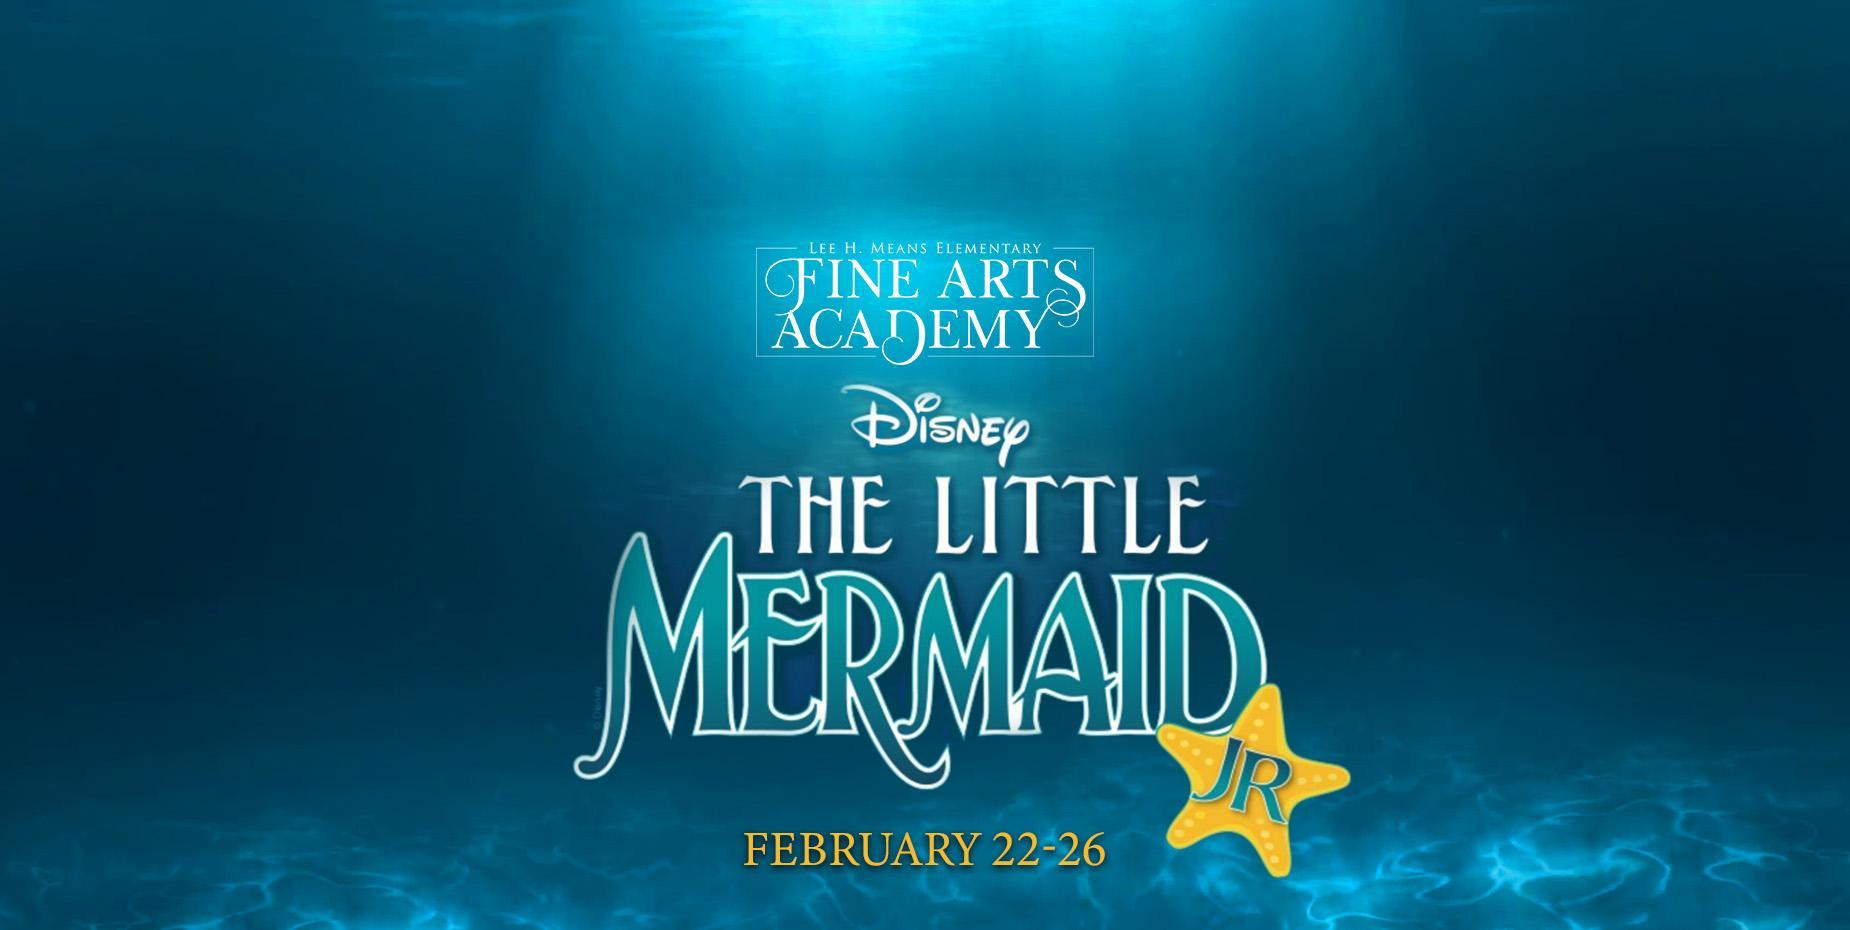 Lee Means Fine Arts Academy presents The Little Mermaid Jr.